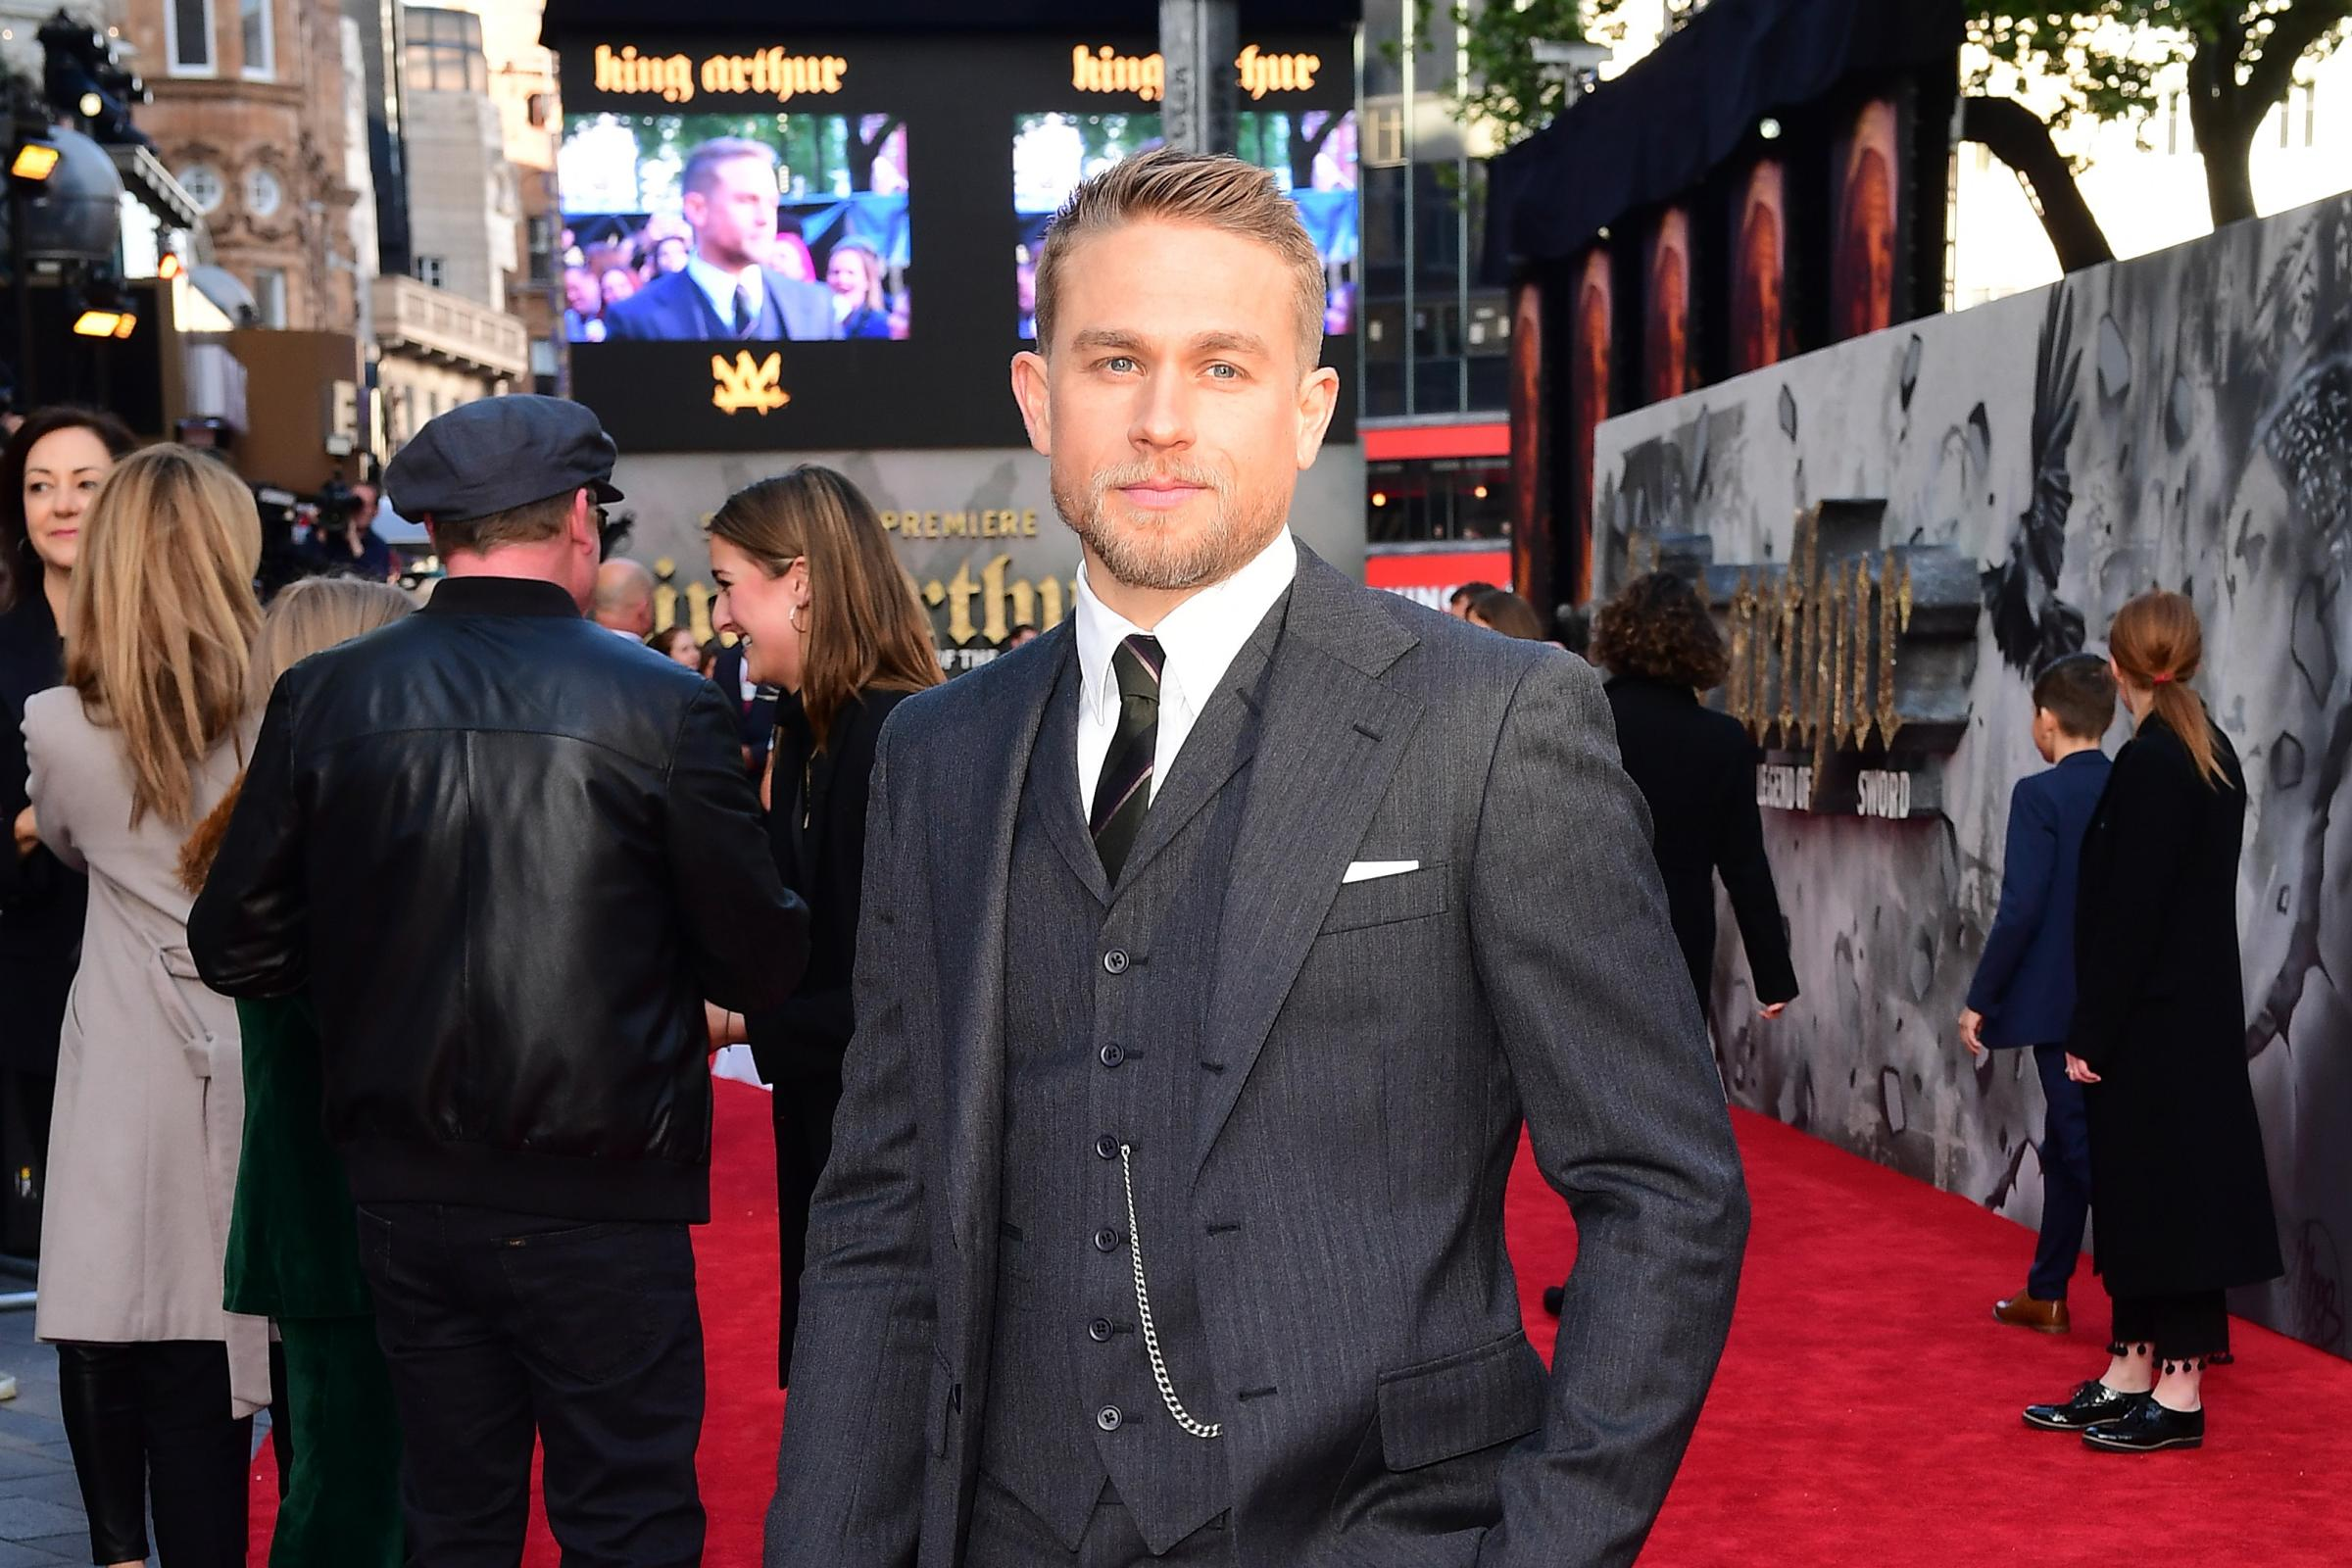 Sons Of Anarchy star Charlie Hunnam, who said Netflix should be eligible for Oscars